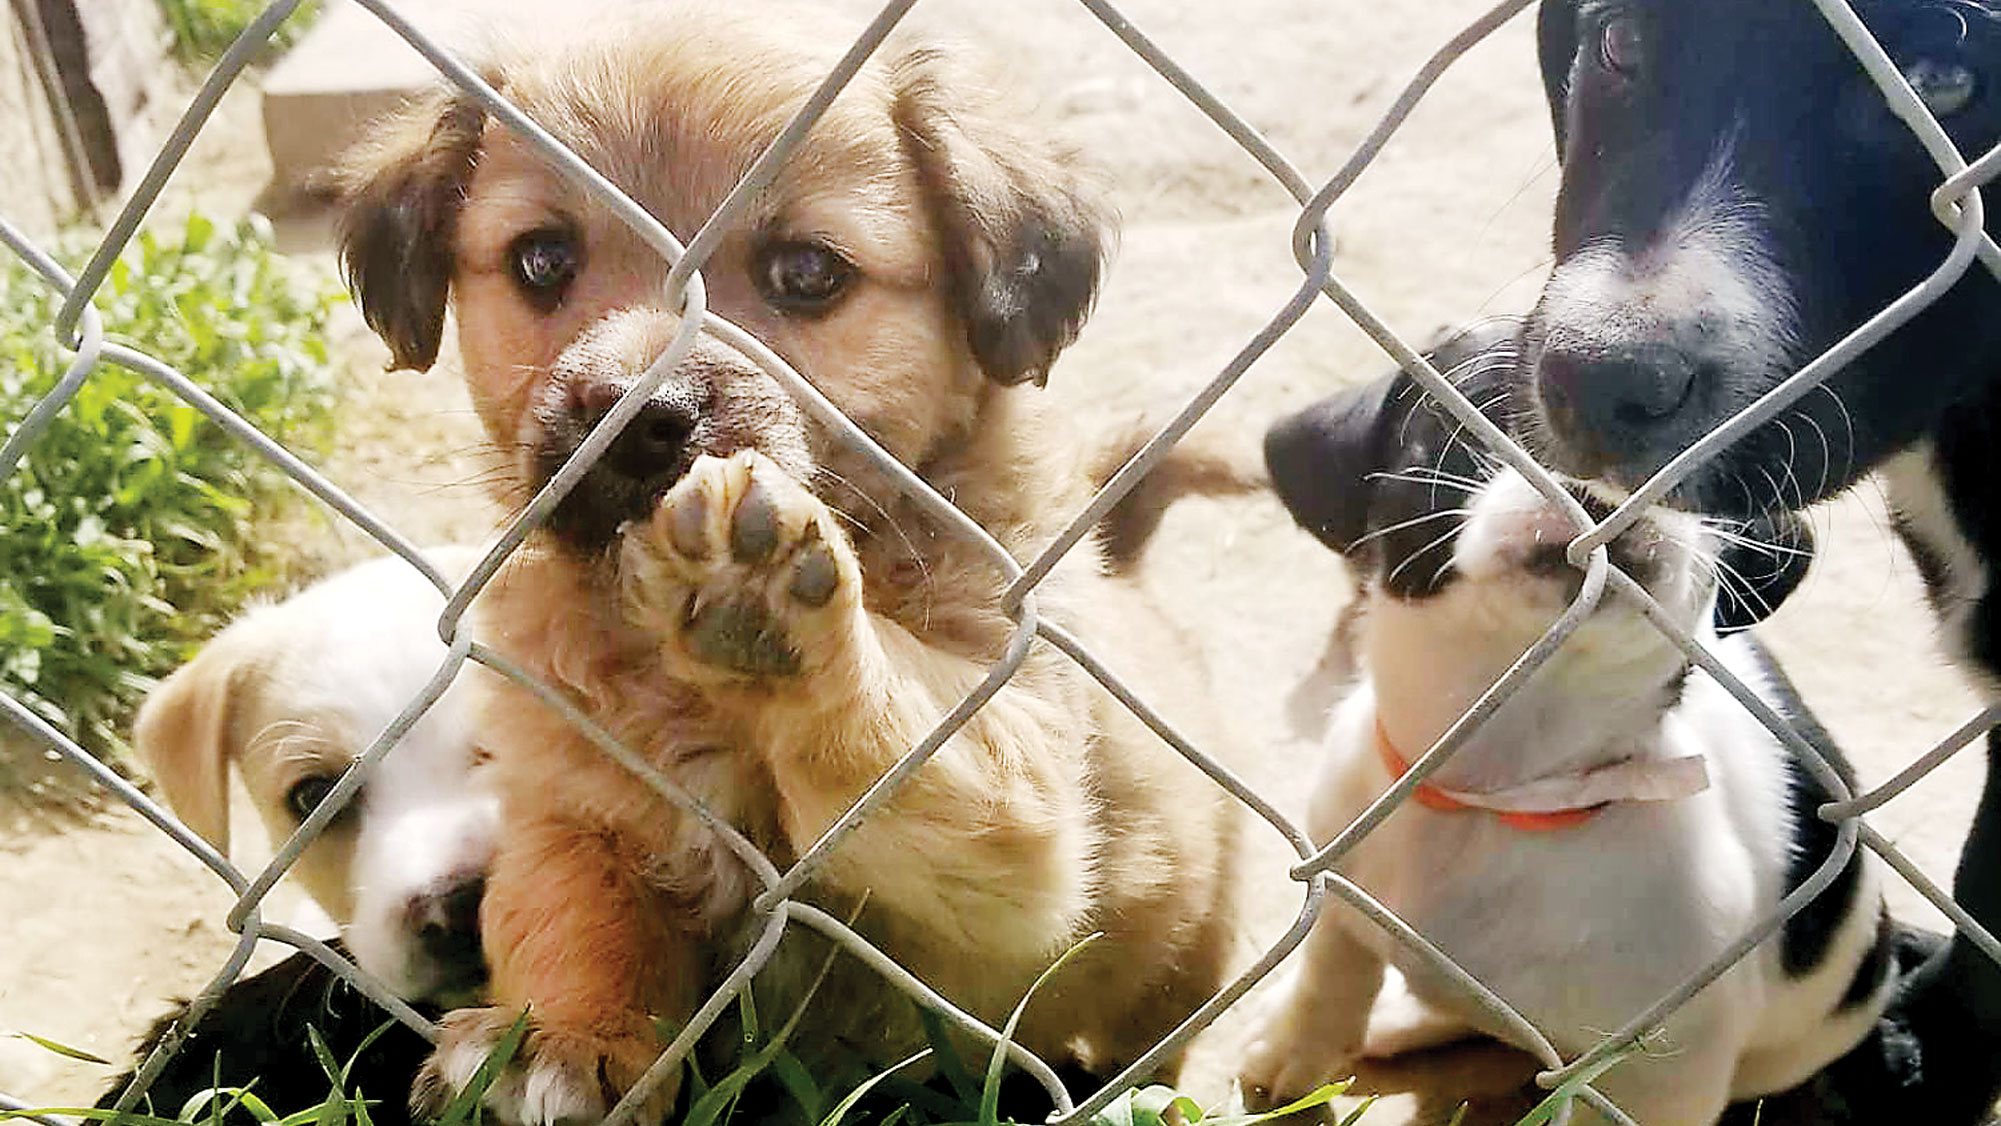 Ontario-area shelter seeks help as dog kennels fill up